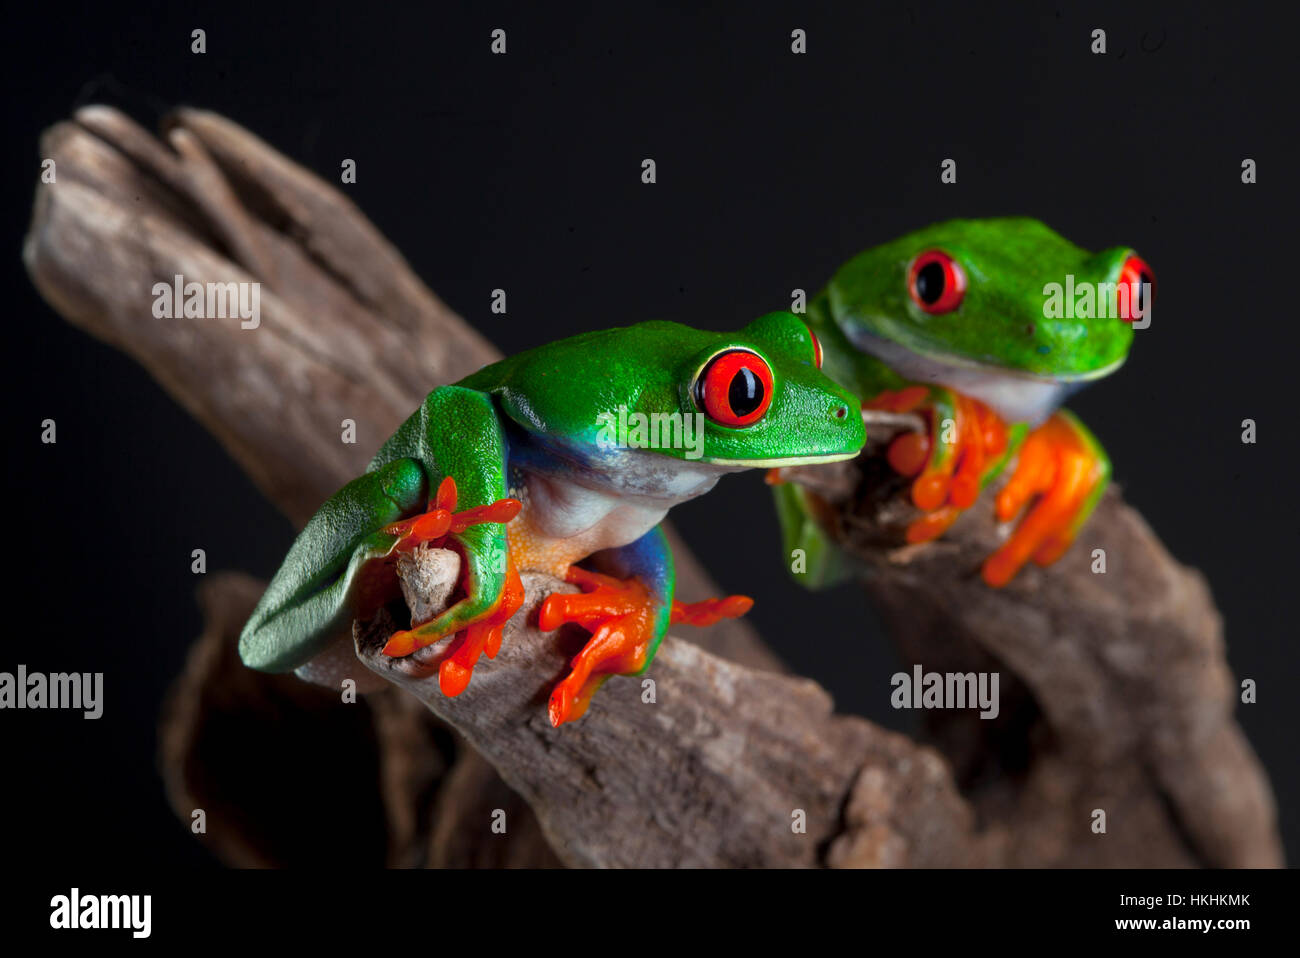 Two Red Eye frog in studio with dark background - Stock Image